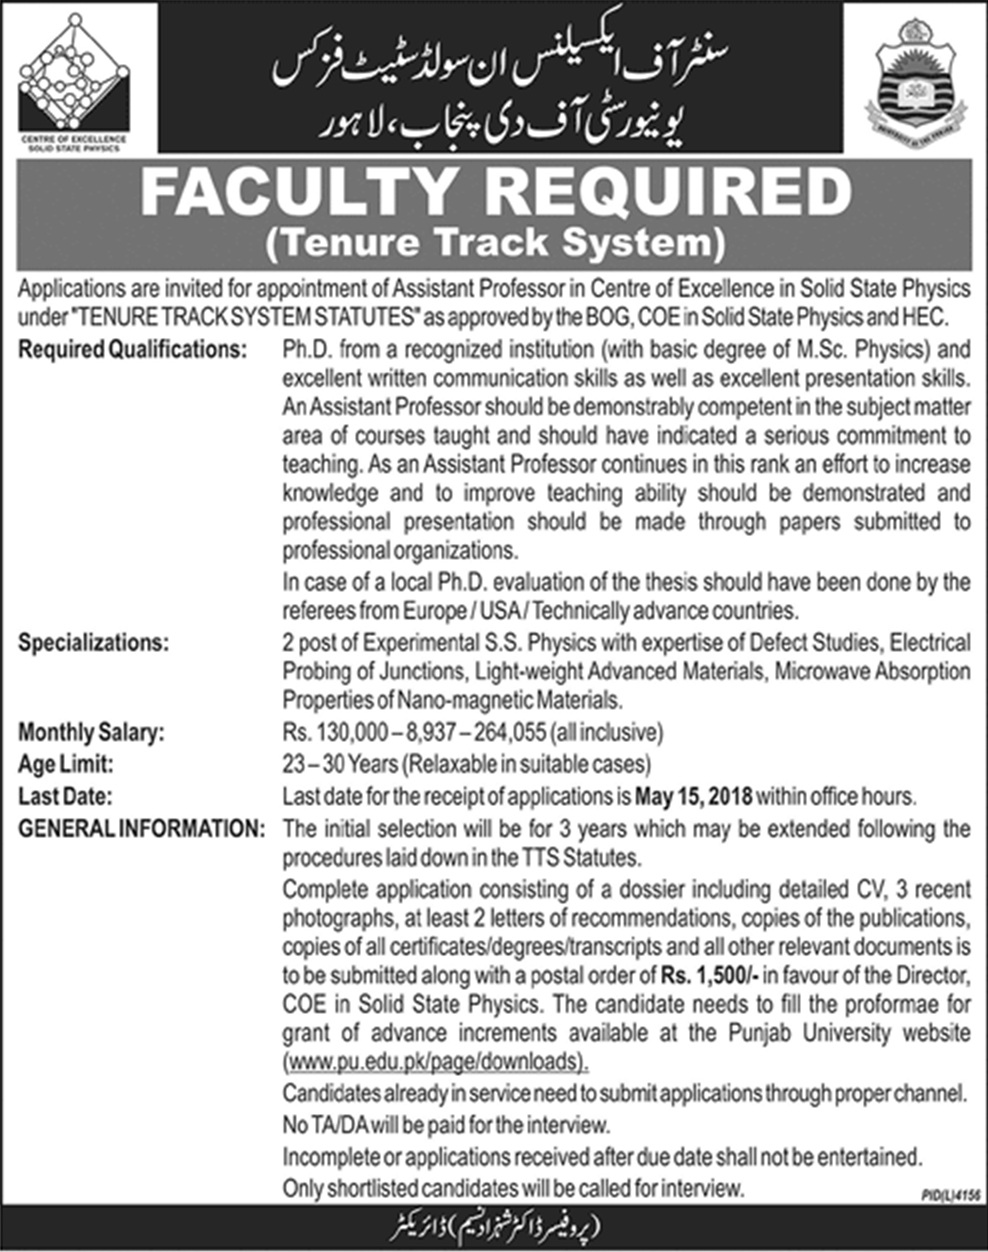 Jobs in PU University of Punjab Tenure Track System